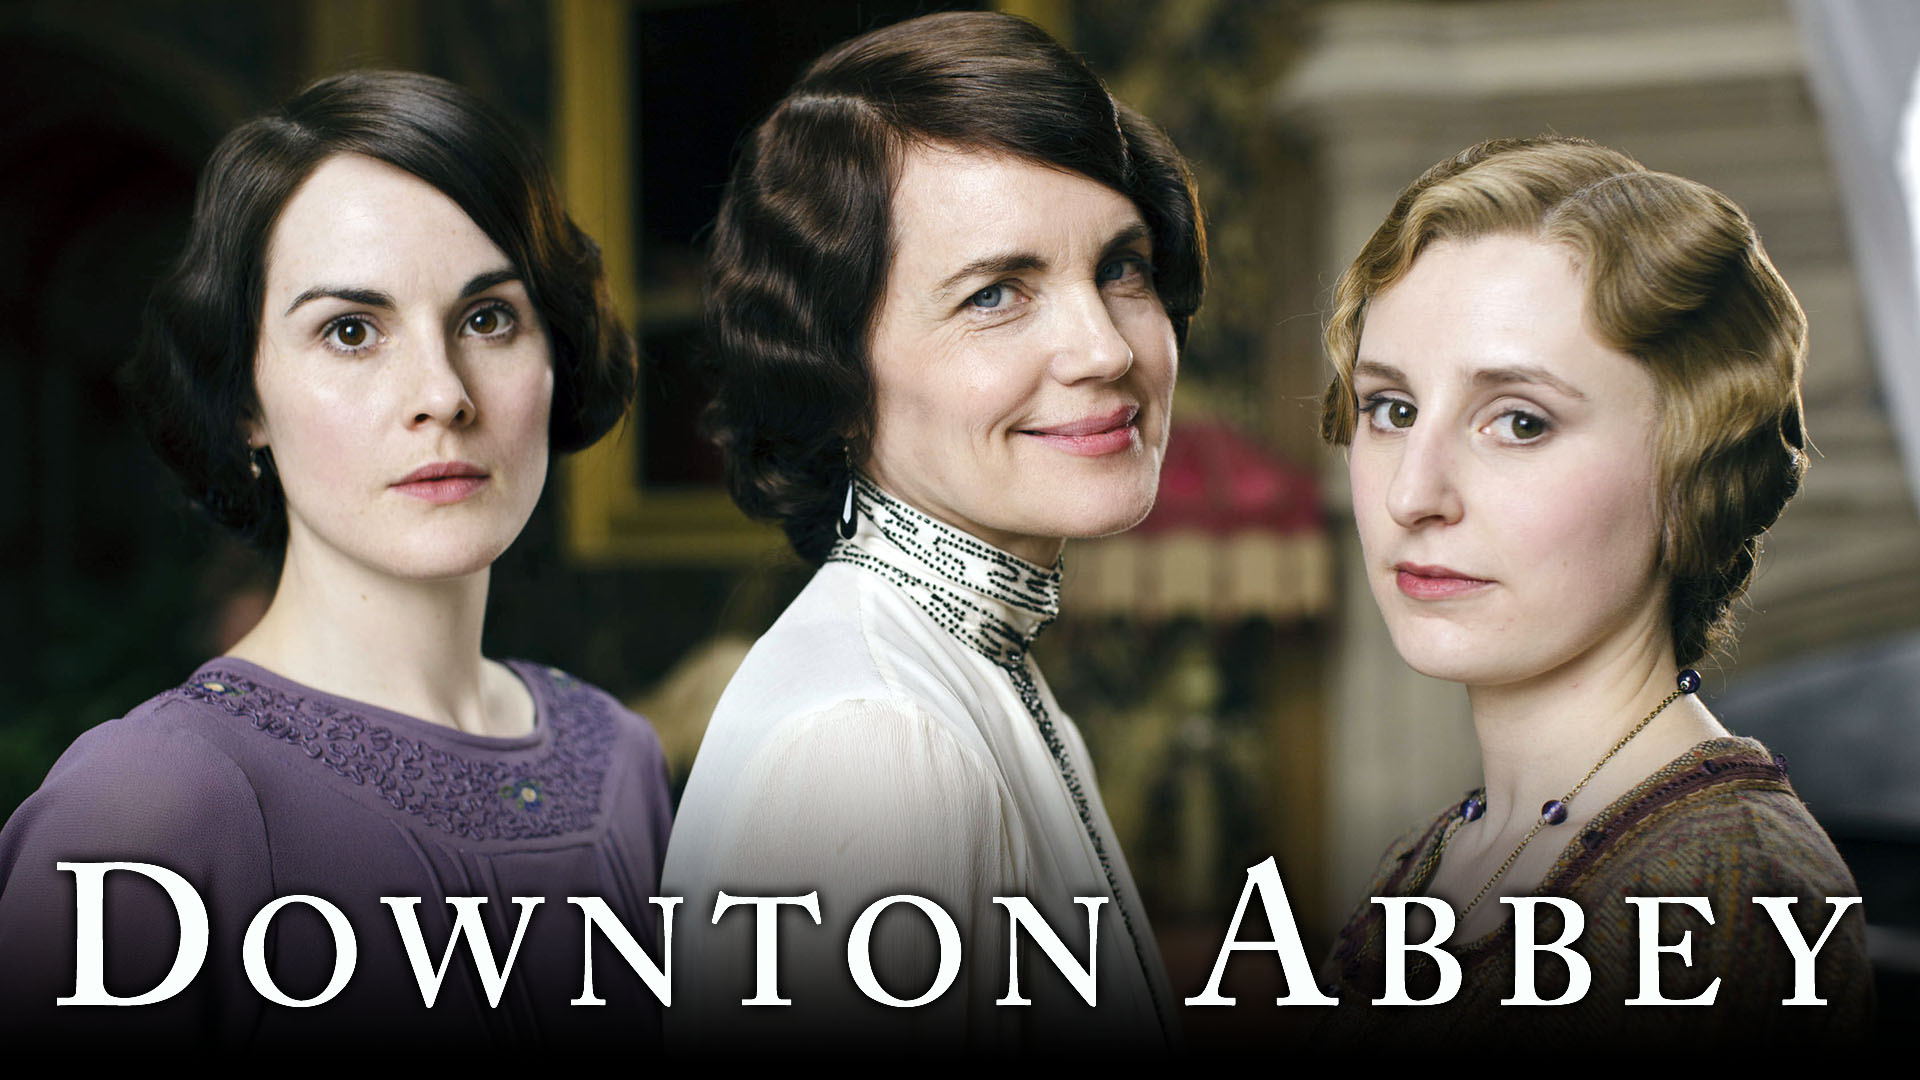 Watch Downton Abbey online | Season 5 - 6 on Lightbox